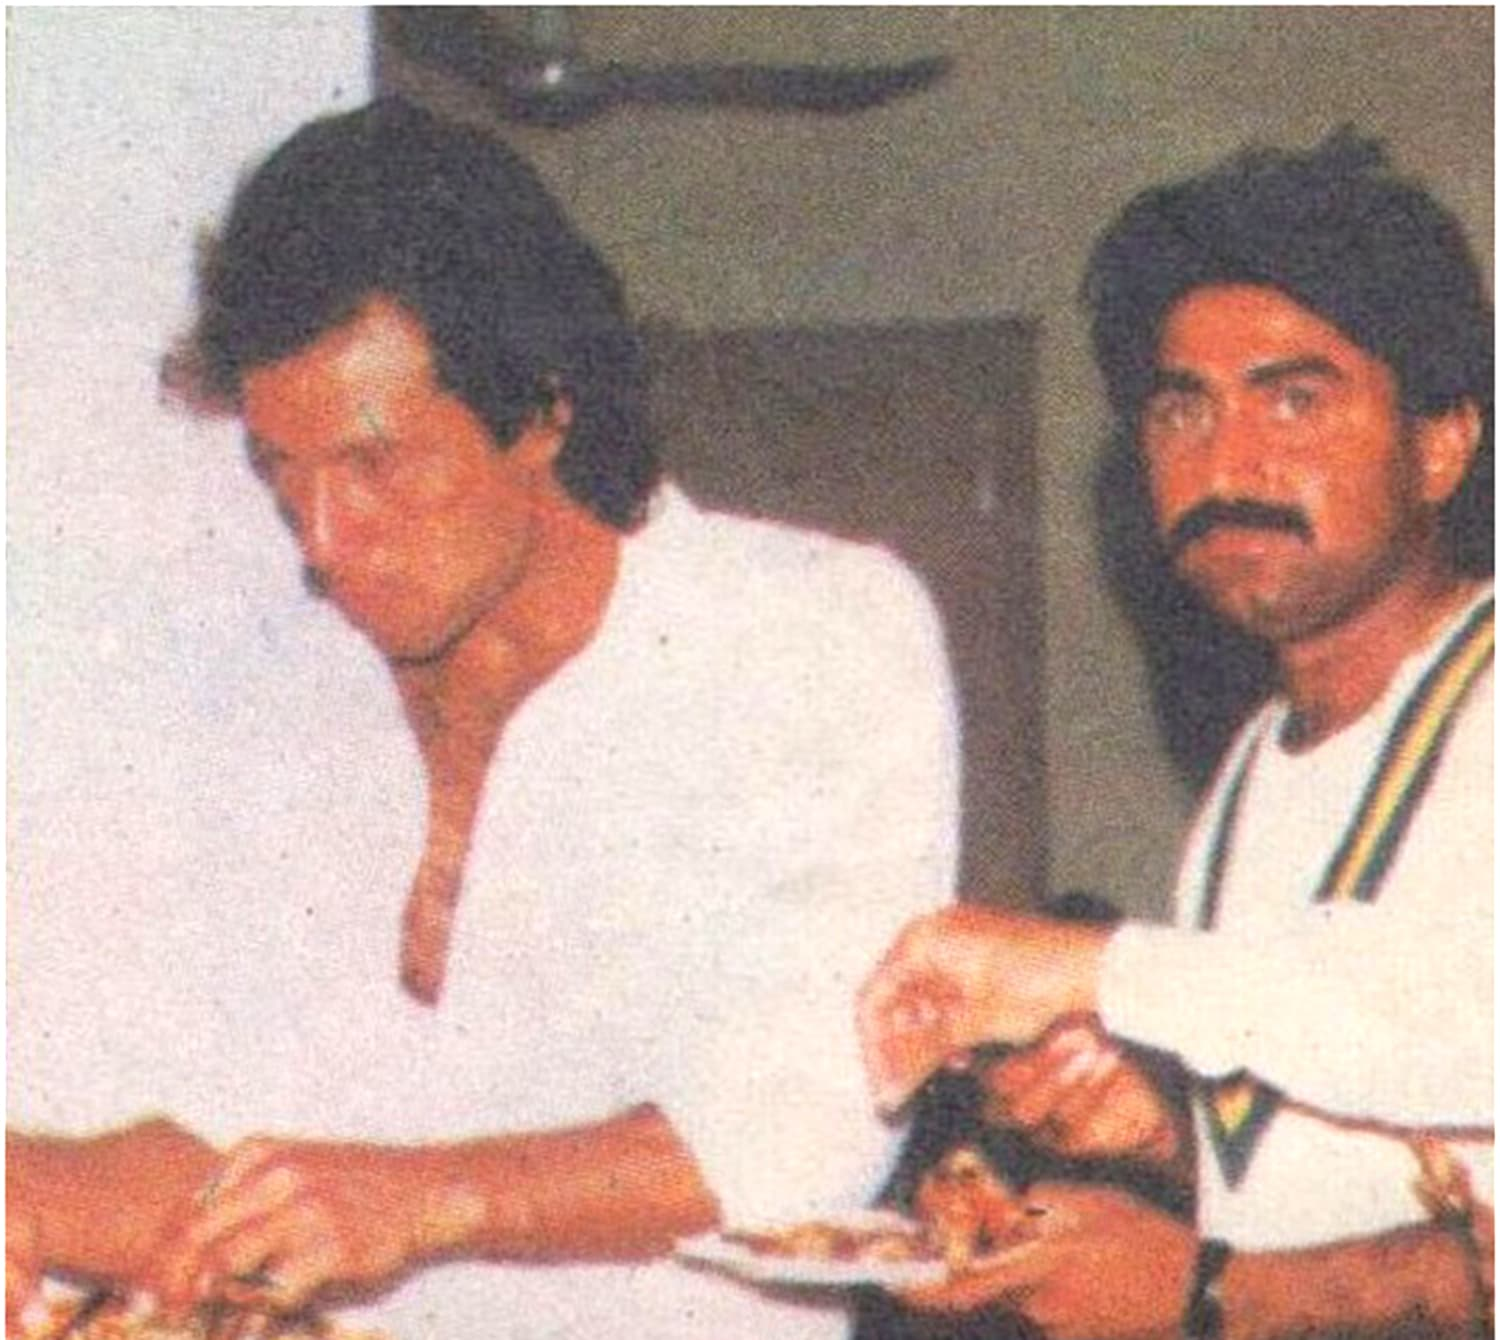 A tense lunch: The captain and vice-captain during the lunch break on day 4. Photo: Akhbar-e-Watan